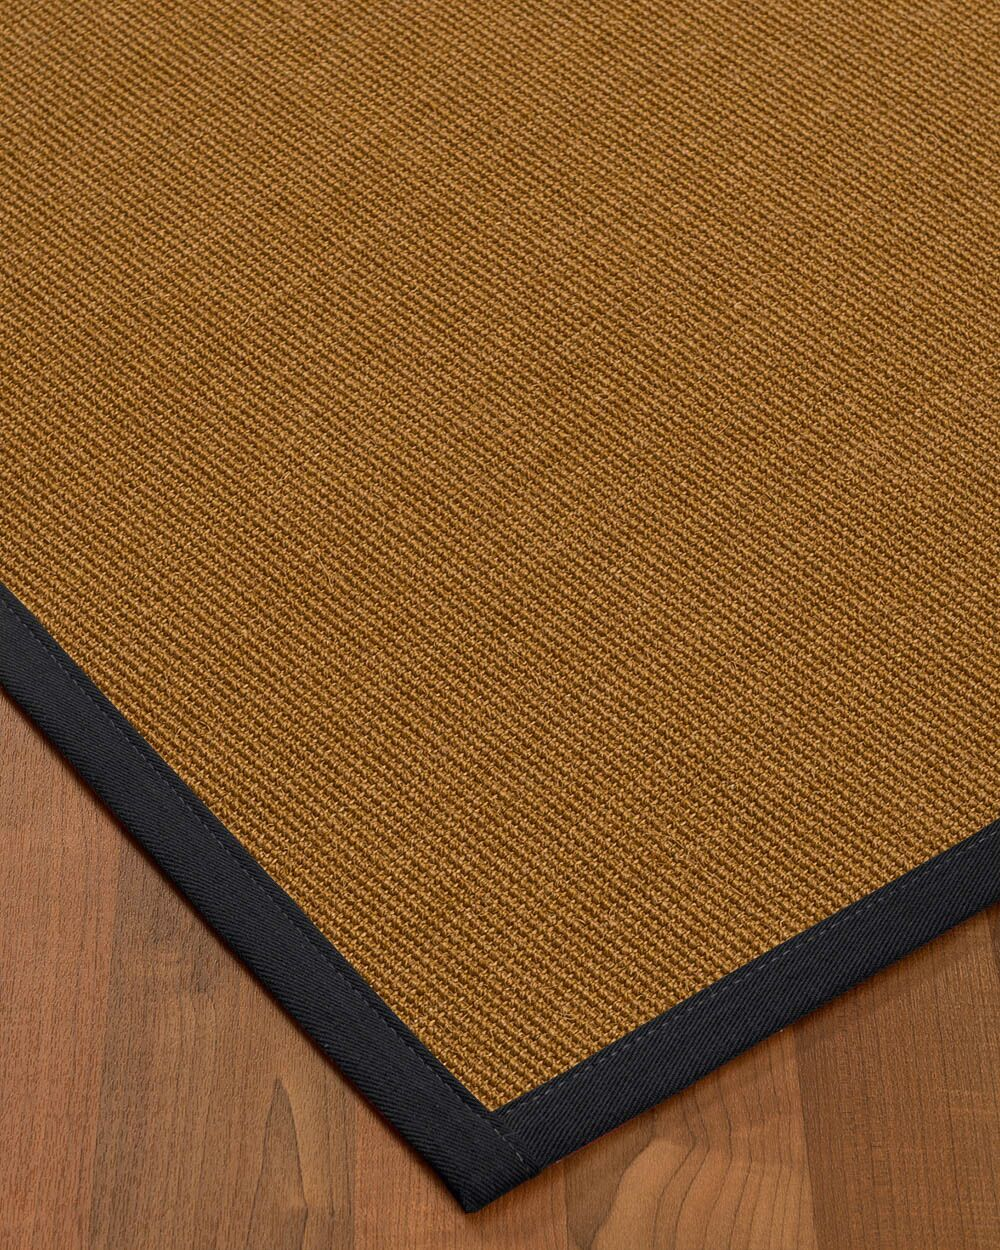 Antonina Border Hand-Woven Brown/Midnight Blue Area Rug Rug Size: Rectangle 8' x 10', Rug Pad Included: Yes